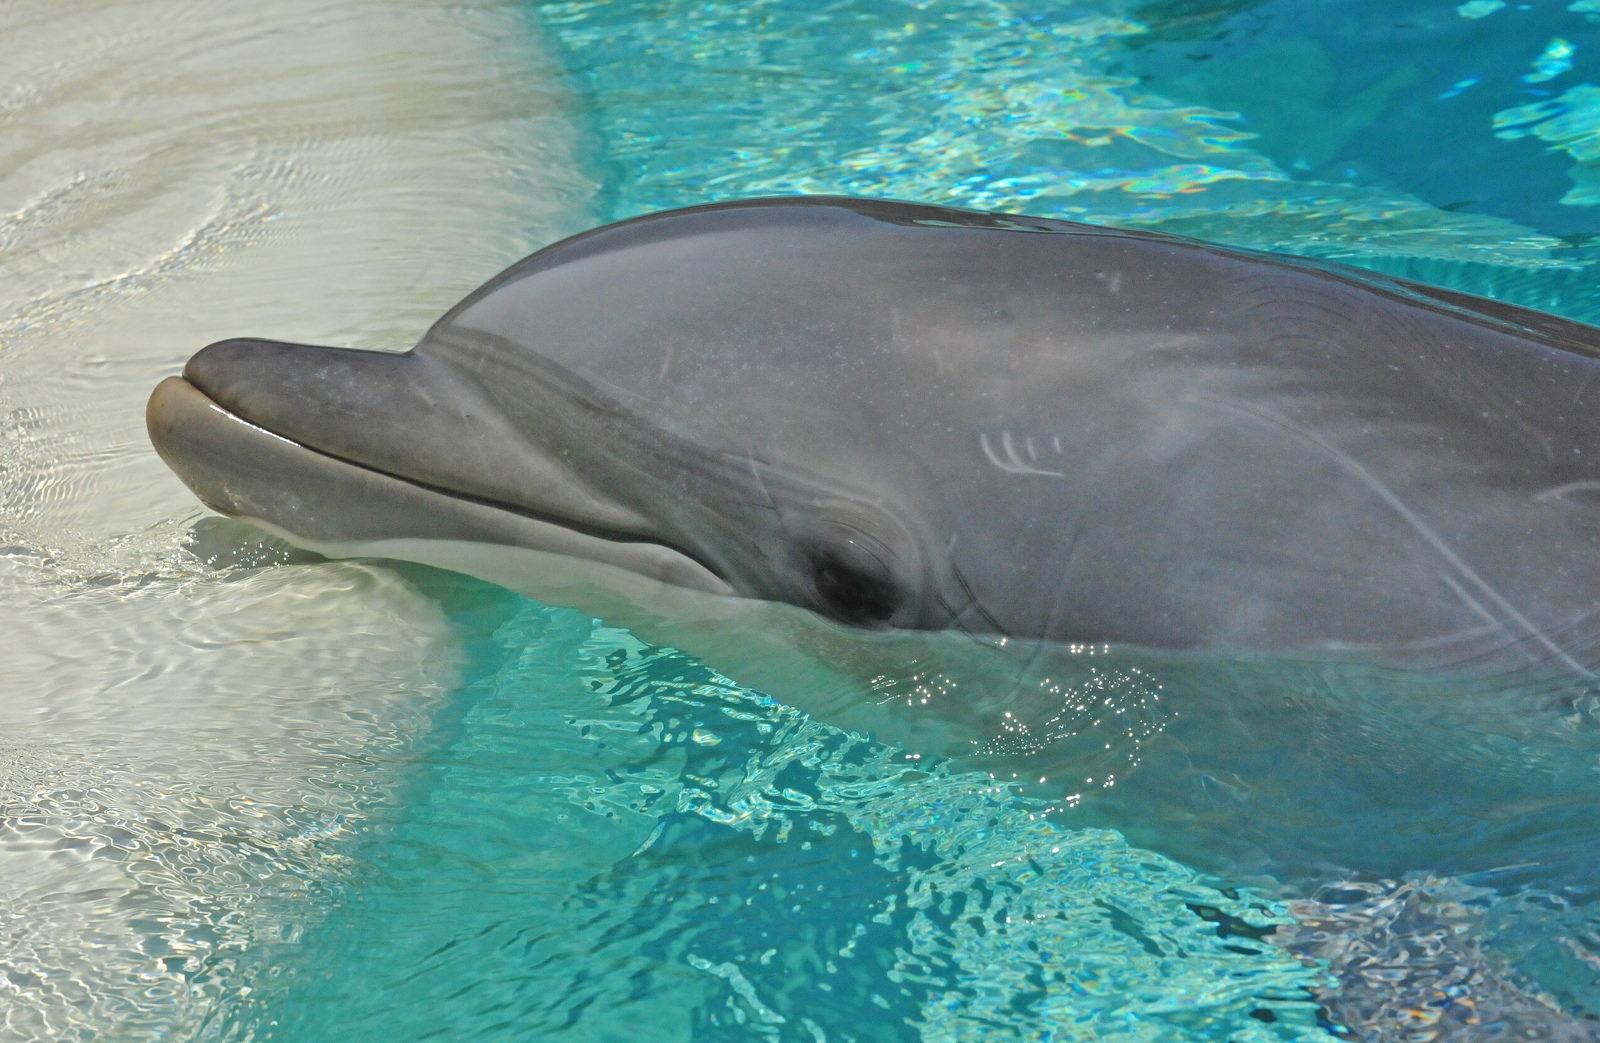 The Shocking Role the World Zoo Association Plays in Taiji Dolphin Hunts